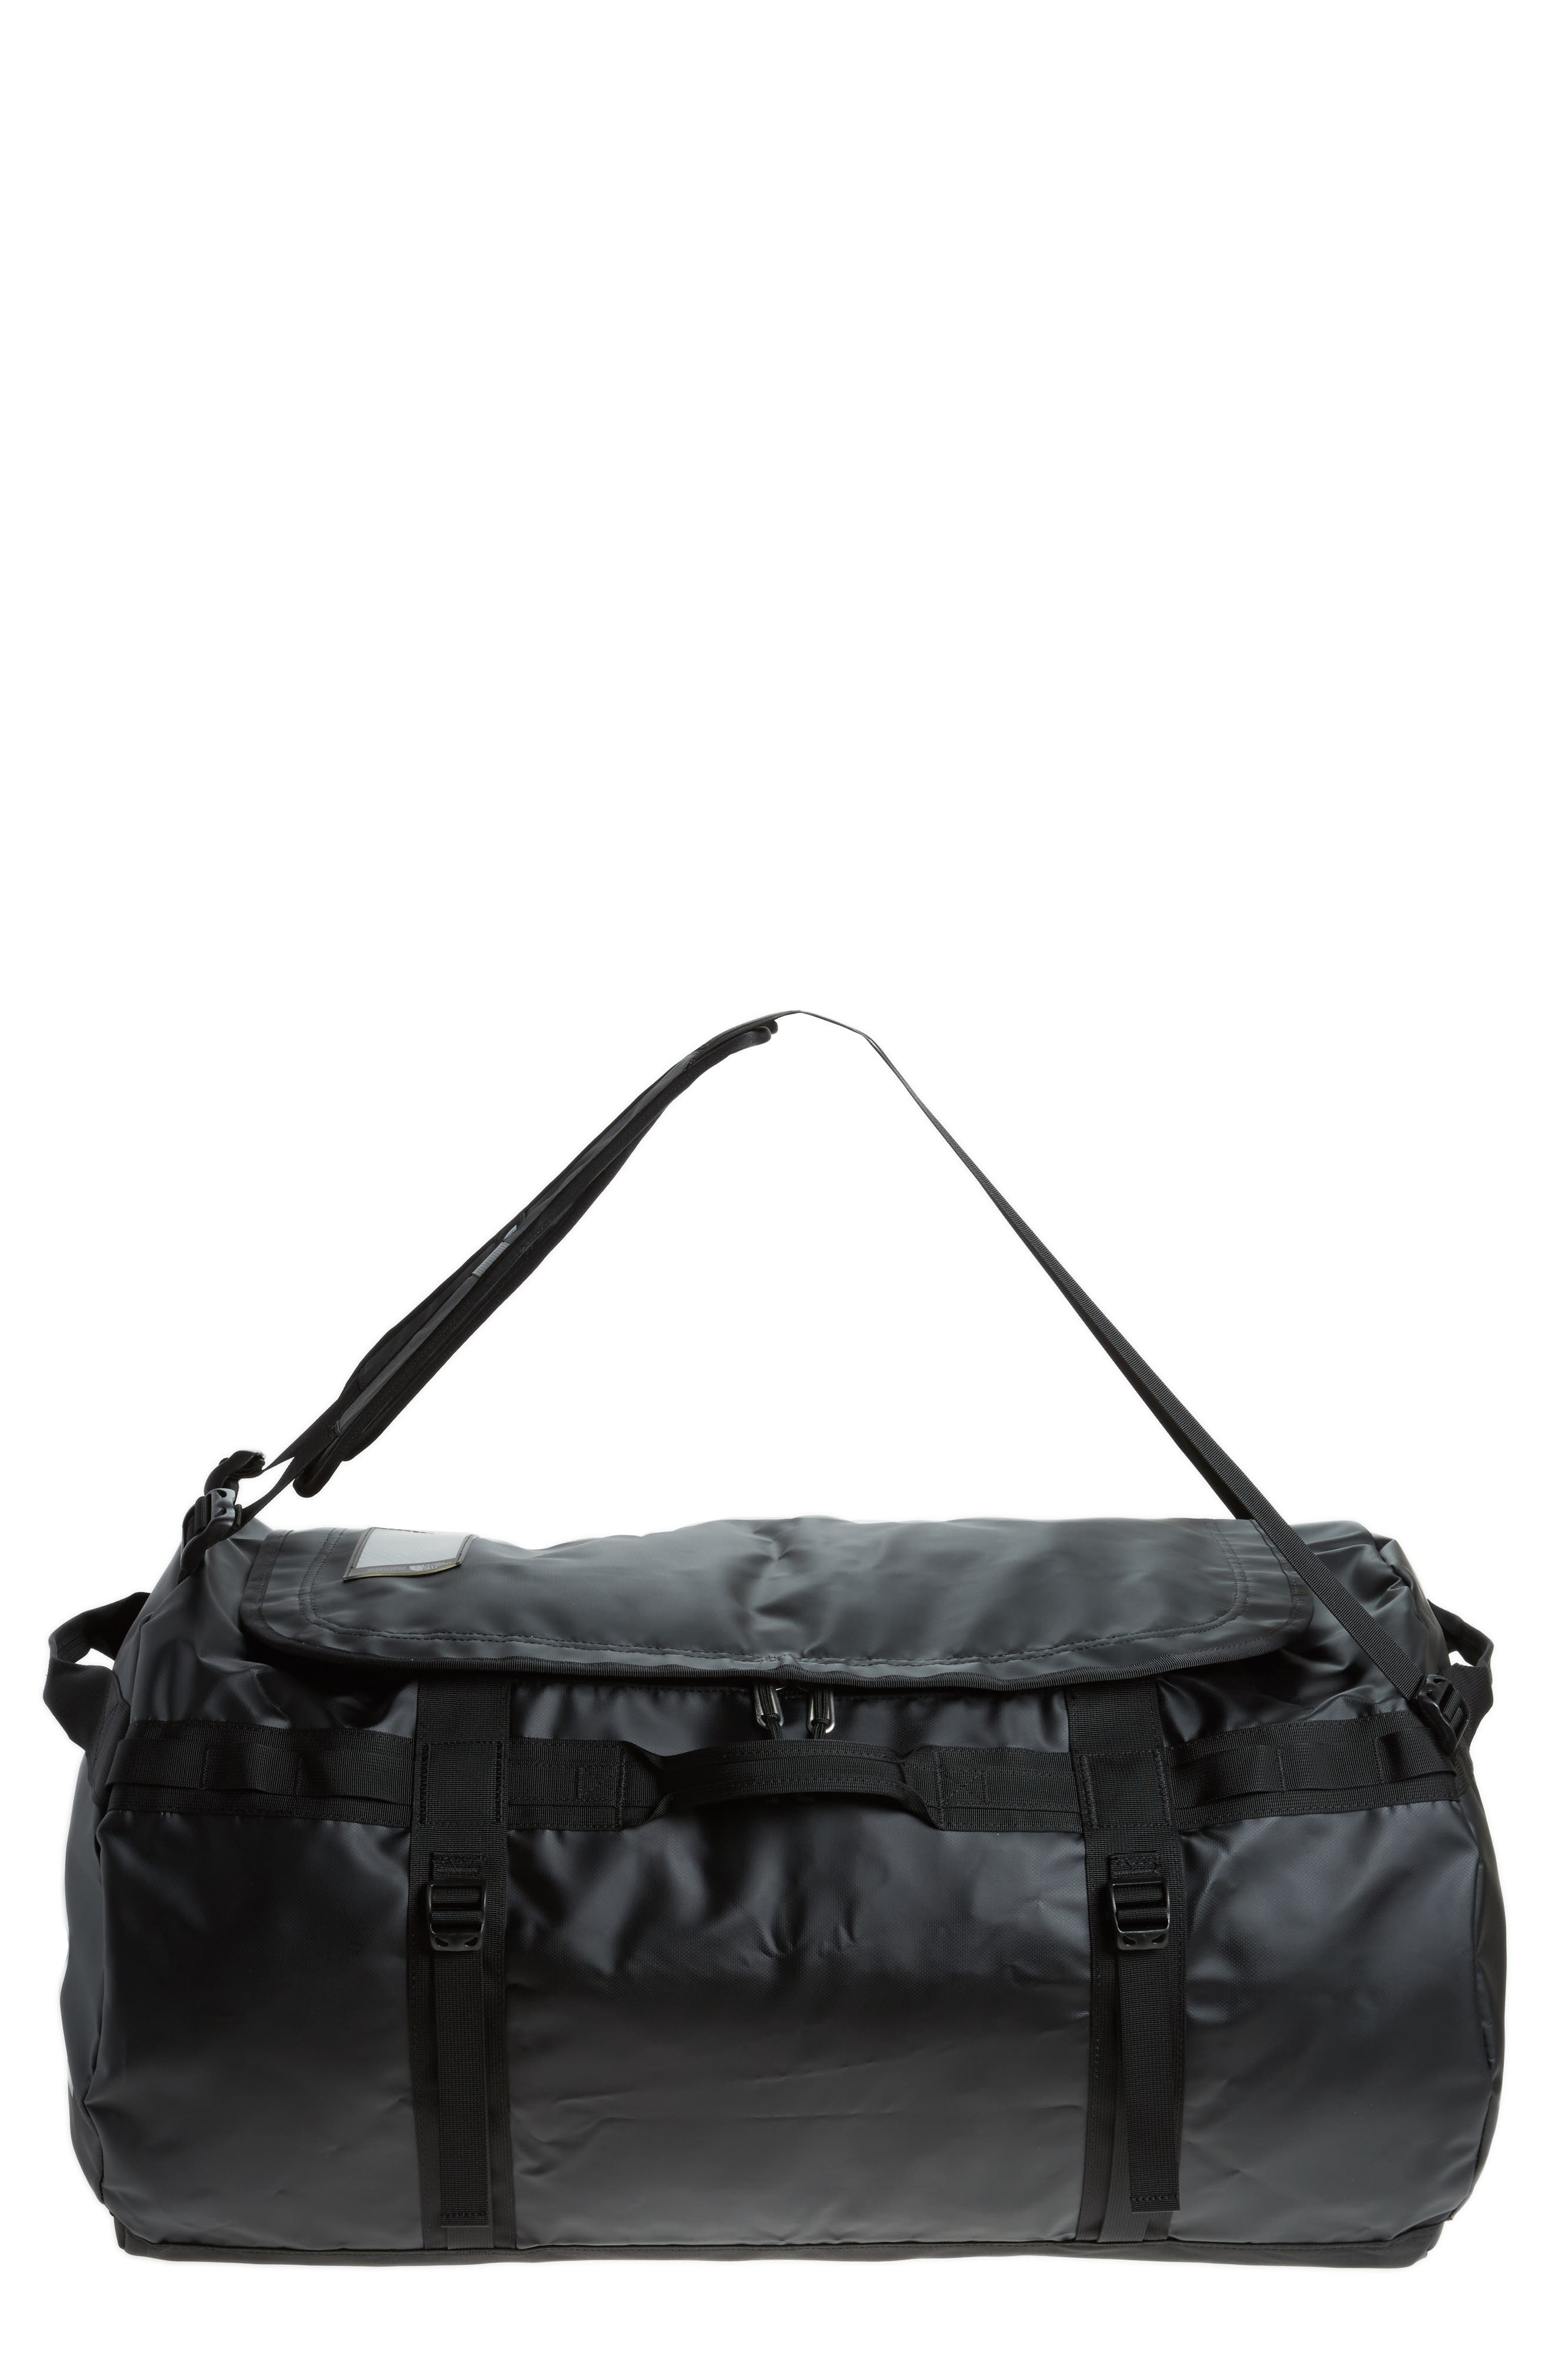 Base Camp XL Duffel Bag,                             Main thumbnail 1, color,                             Black